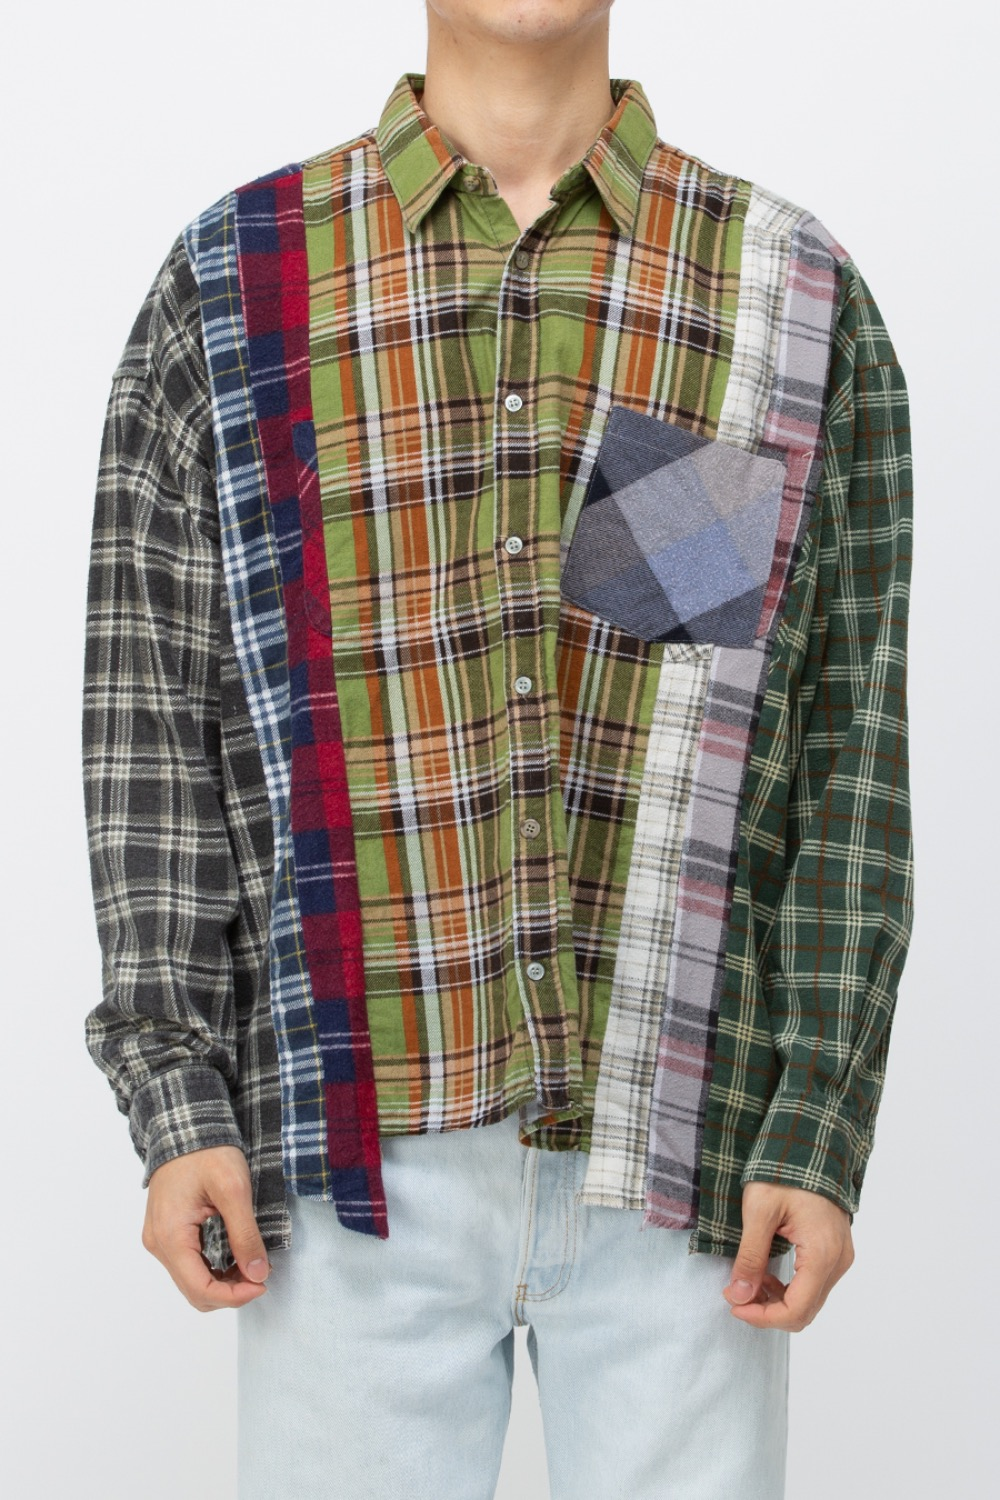 (WIDE-2)REBUILD BY NEEDLES FLANNEL SHIRT - 7CUTS WIDE SHIRT